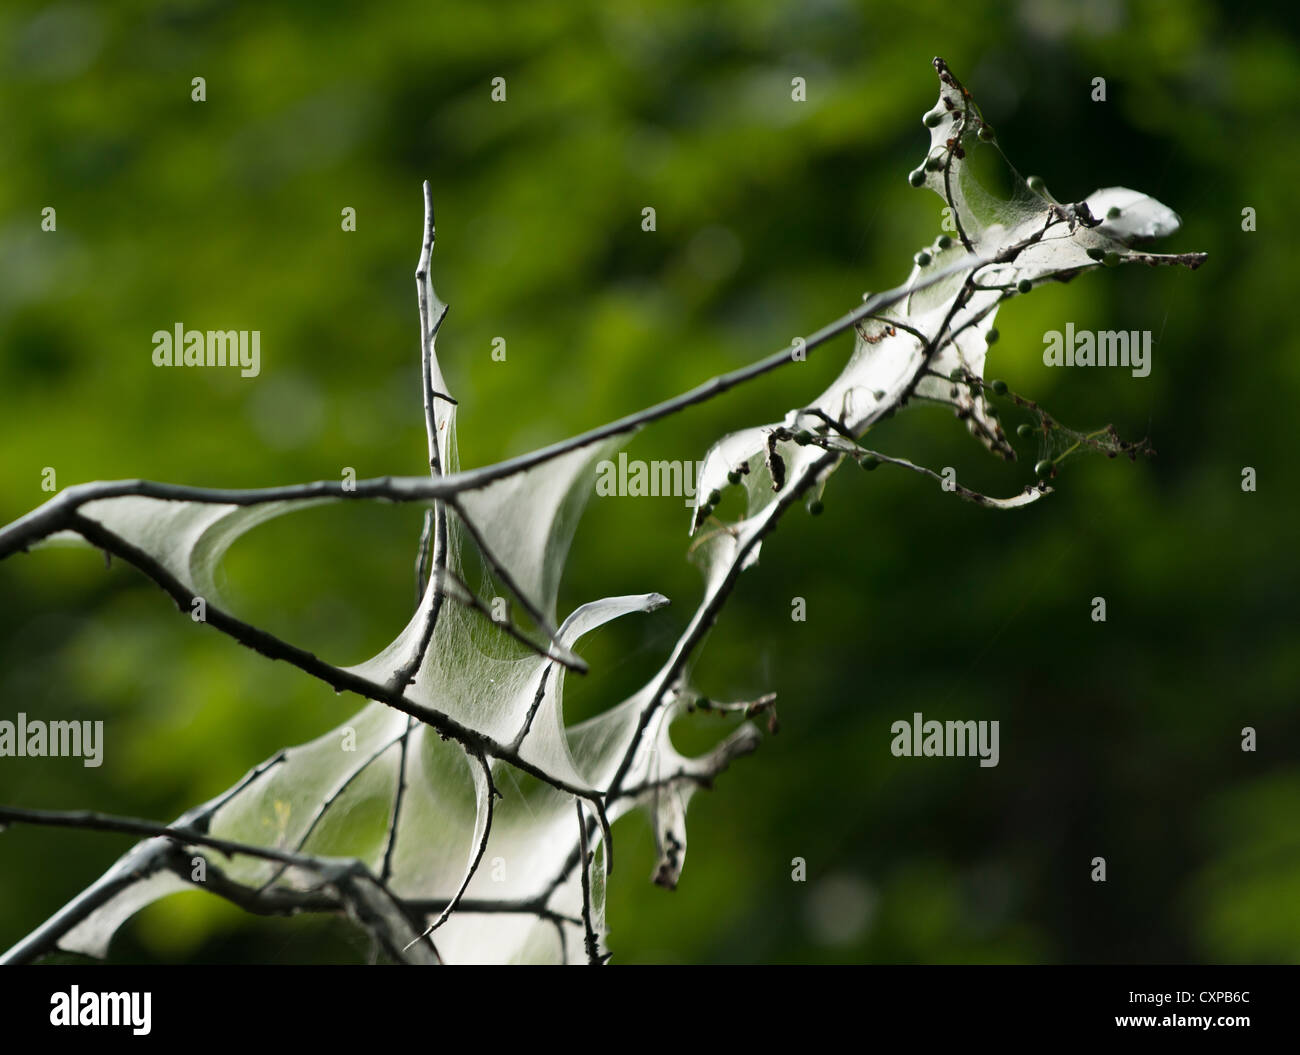 Webs of the tent caterpillar in the branches of a tree - Stock Image